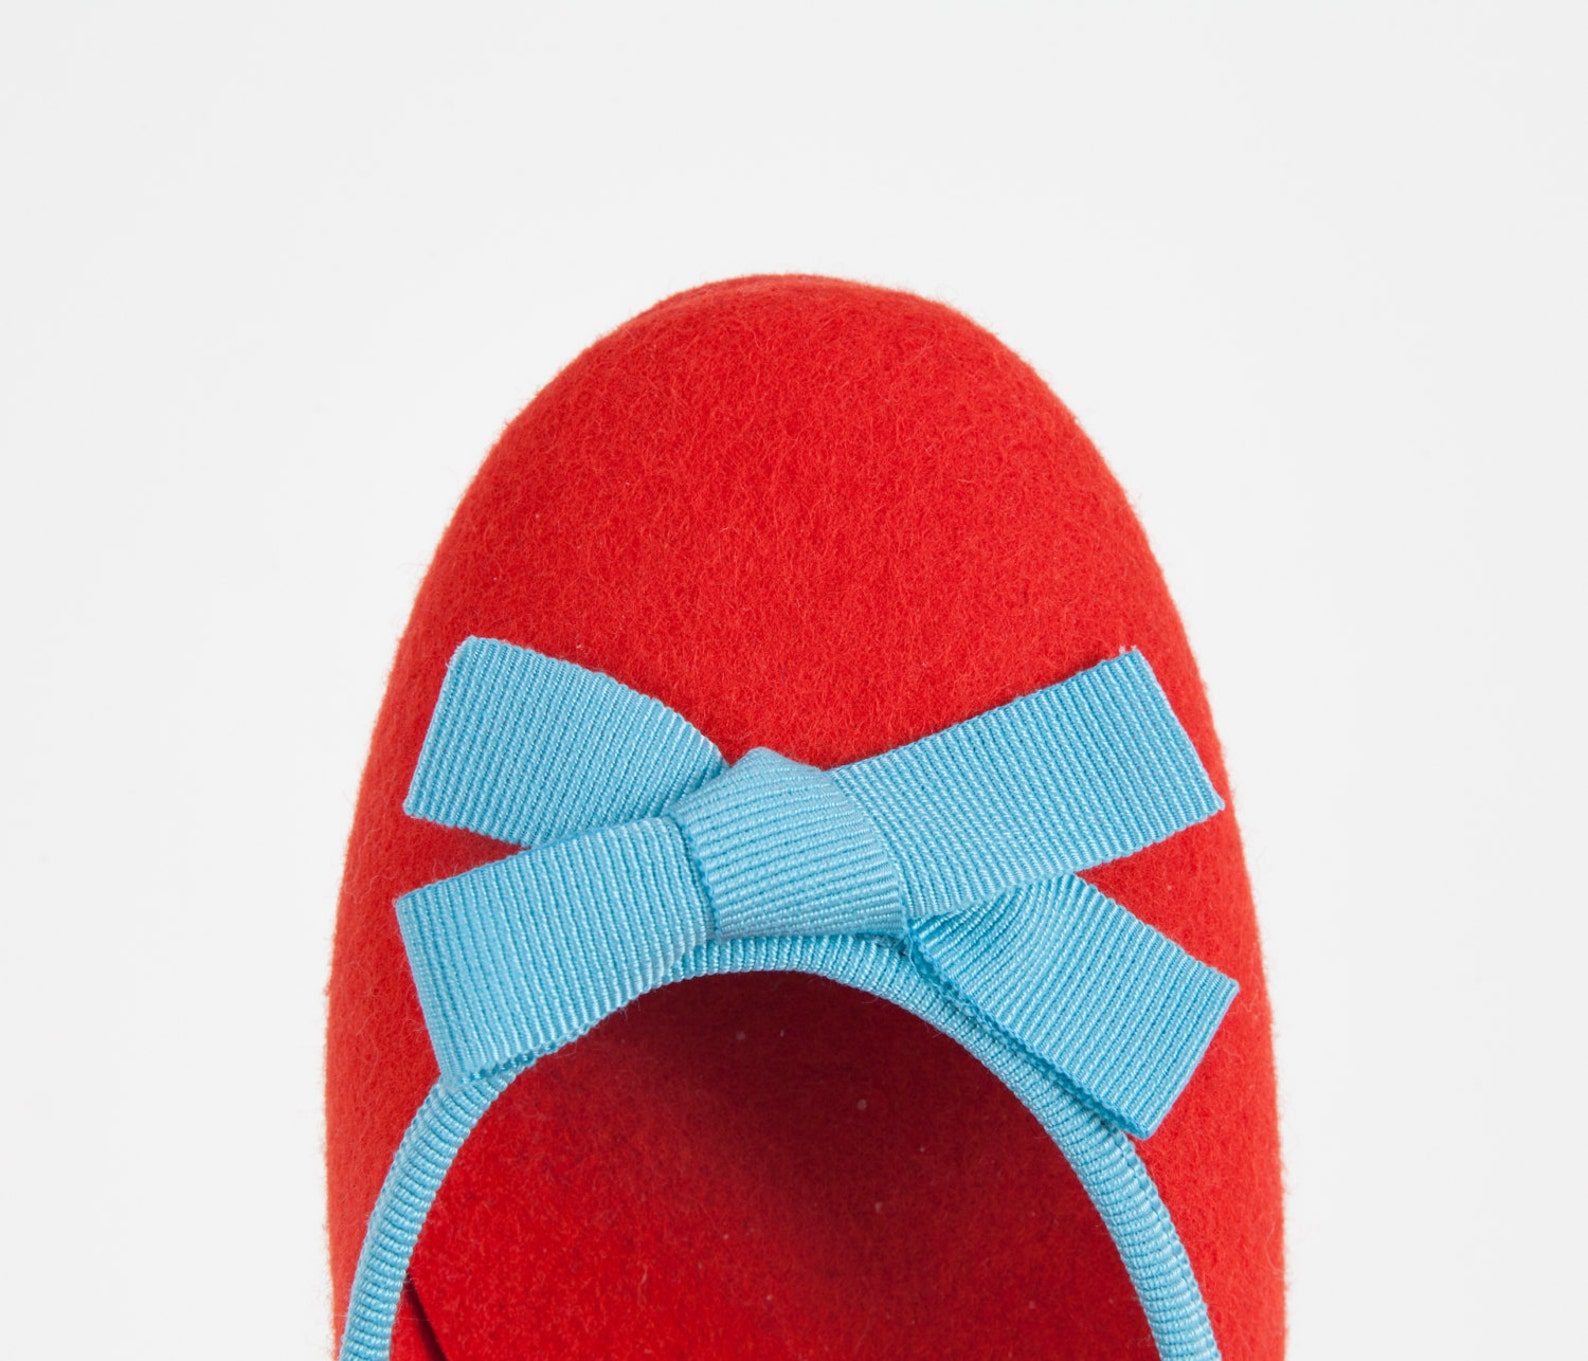 women's slippers- red ballet flat- merino wool felt- handmade in italy- grosgrain ribbon & bow- size eu 37